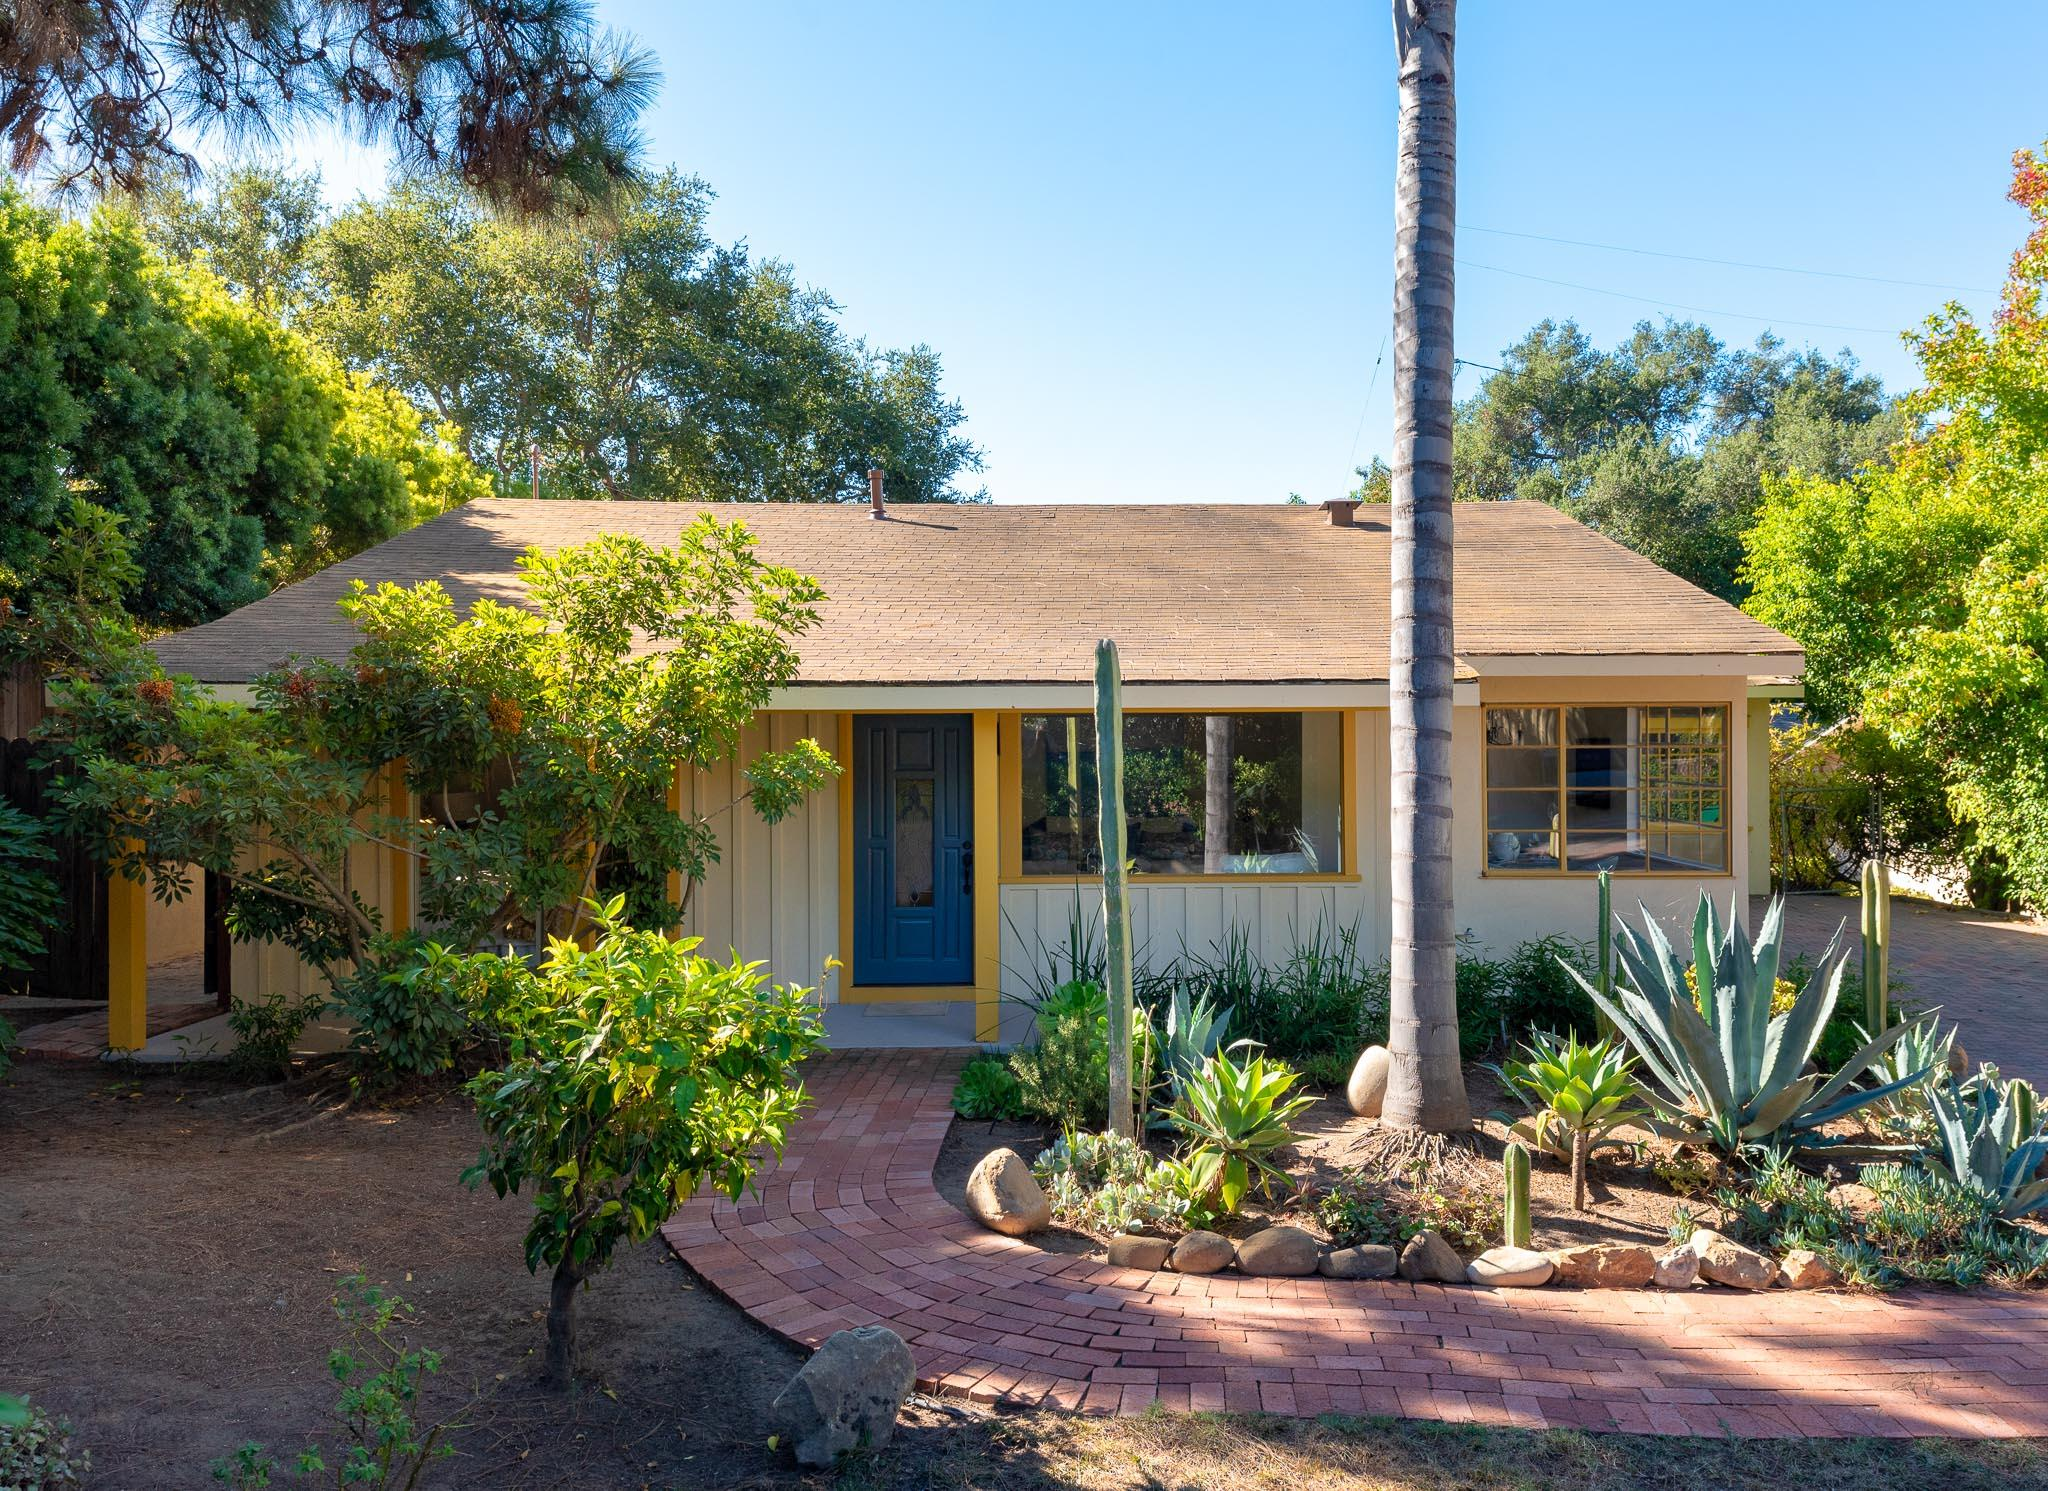 Property photo for 966 Chelham Way Santa Barbara, California 93108 - 18-3820